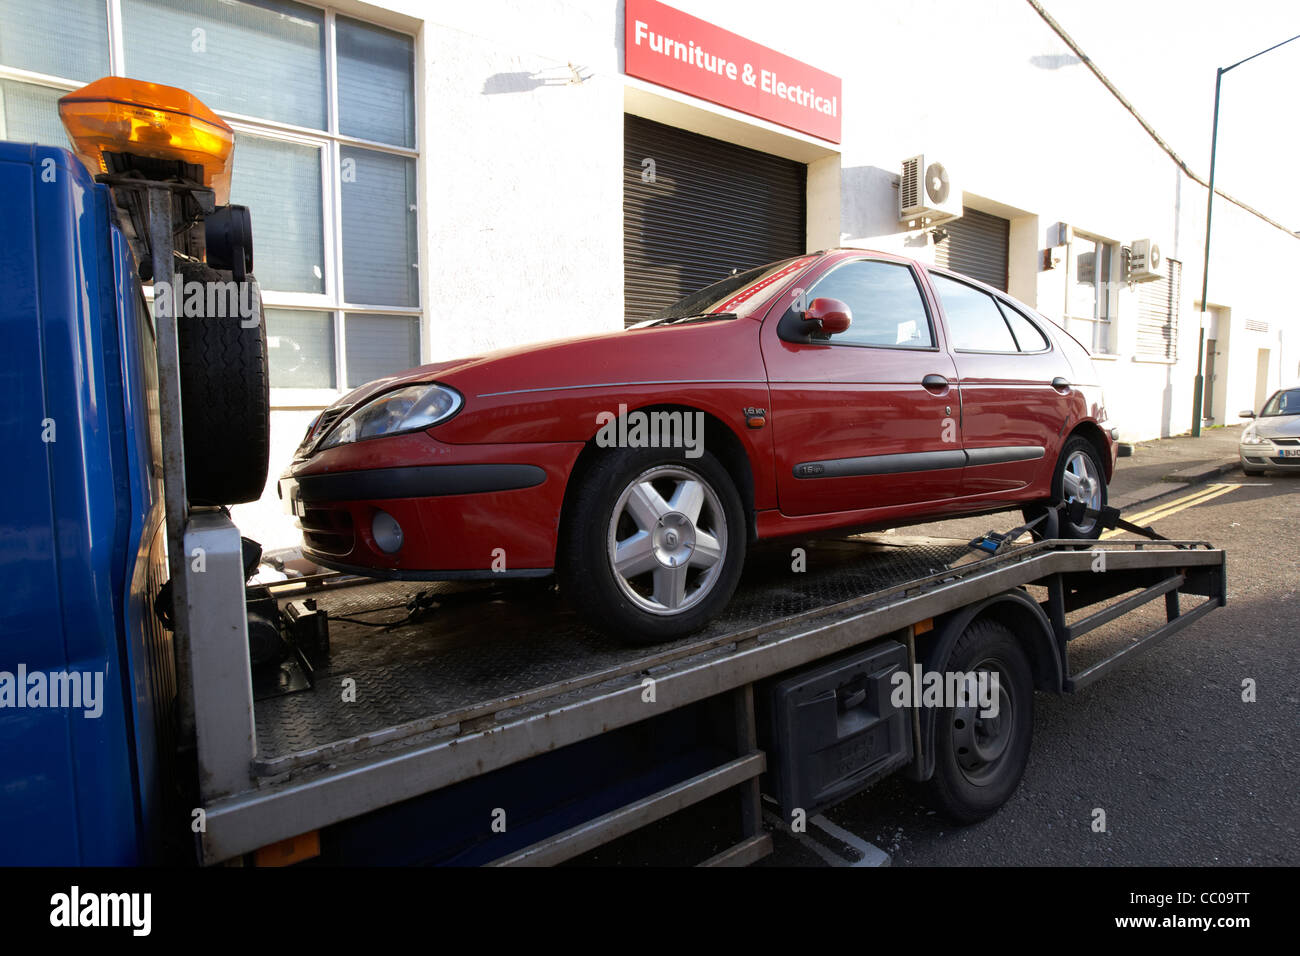 renault megane car attached to the back of a car transport recovery vehicle on street London England UK United kingdom - Stock Image